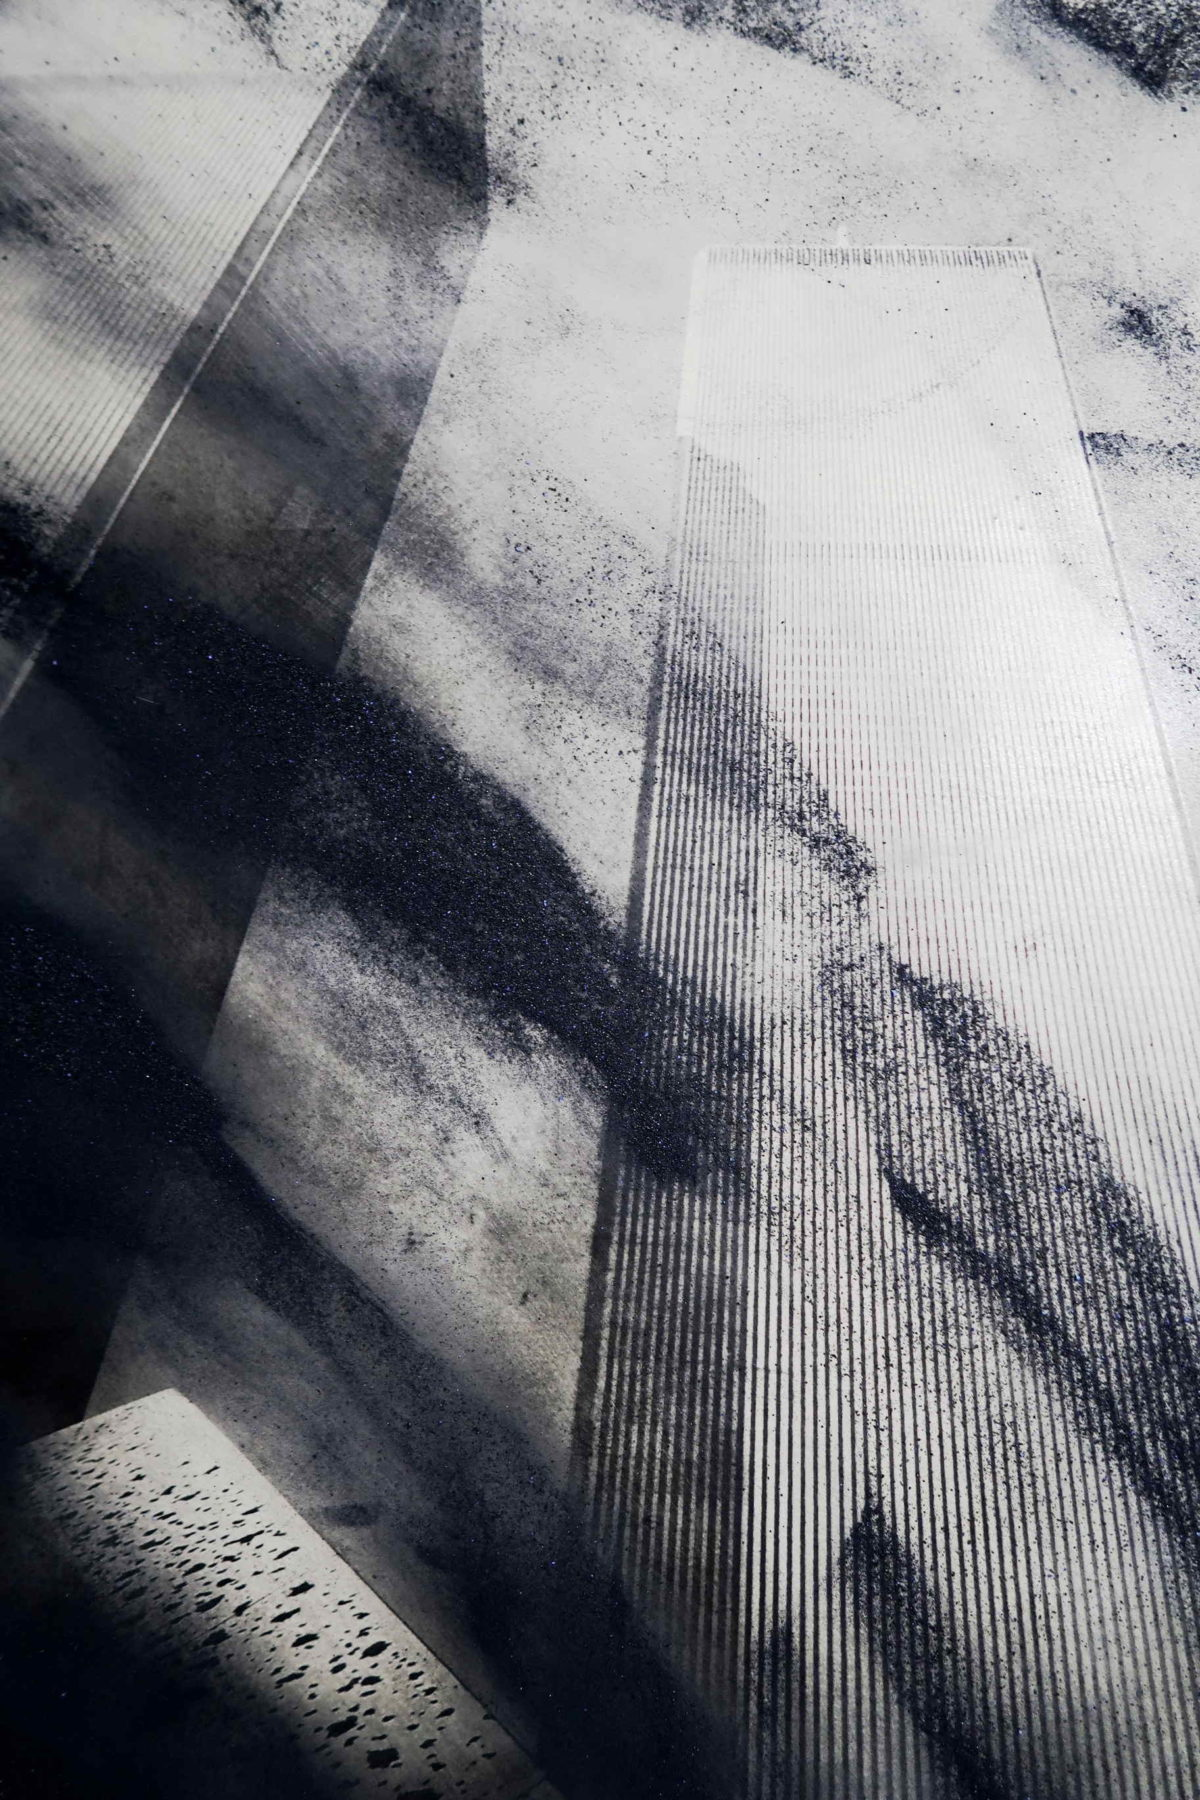 Limited edition photographs New York. New York, photo art the twin towers